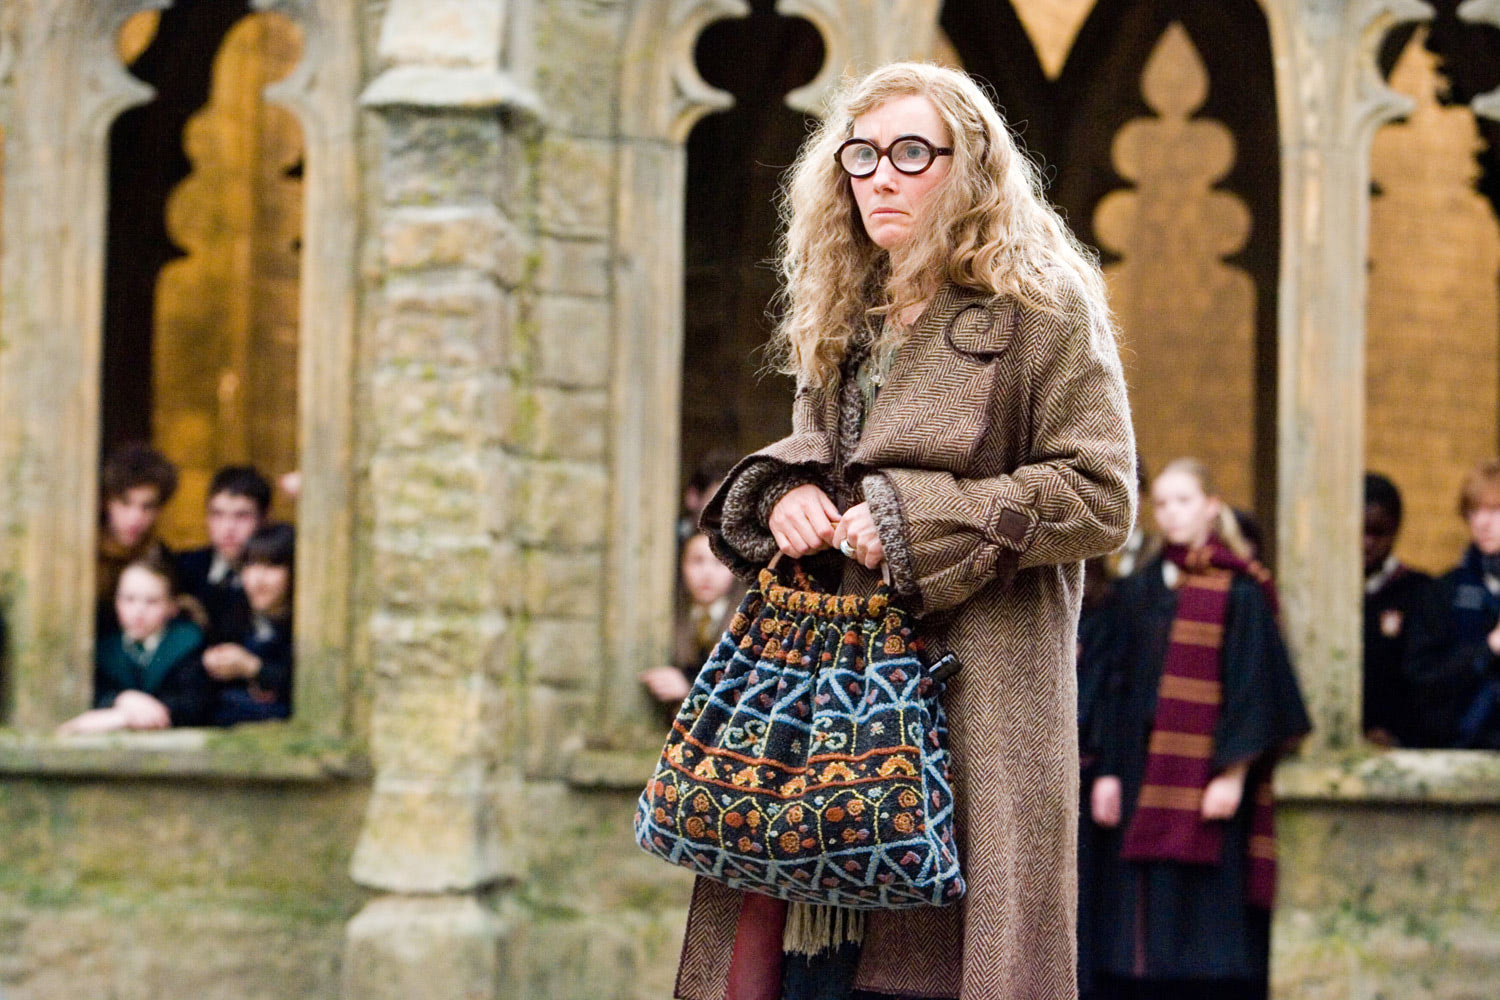 Professor Trelawney is sacked